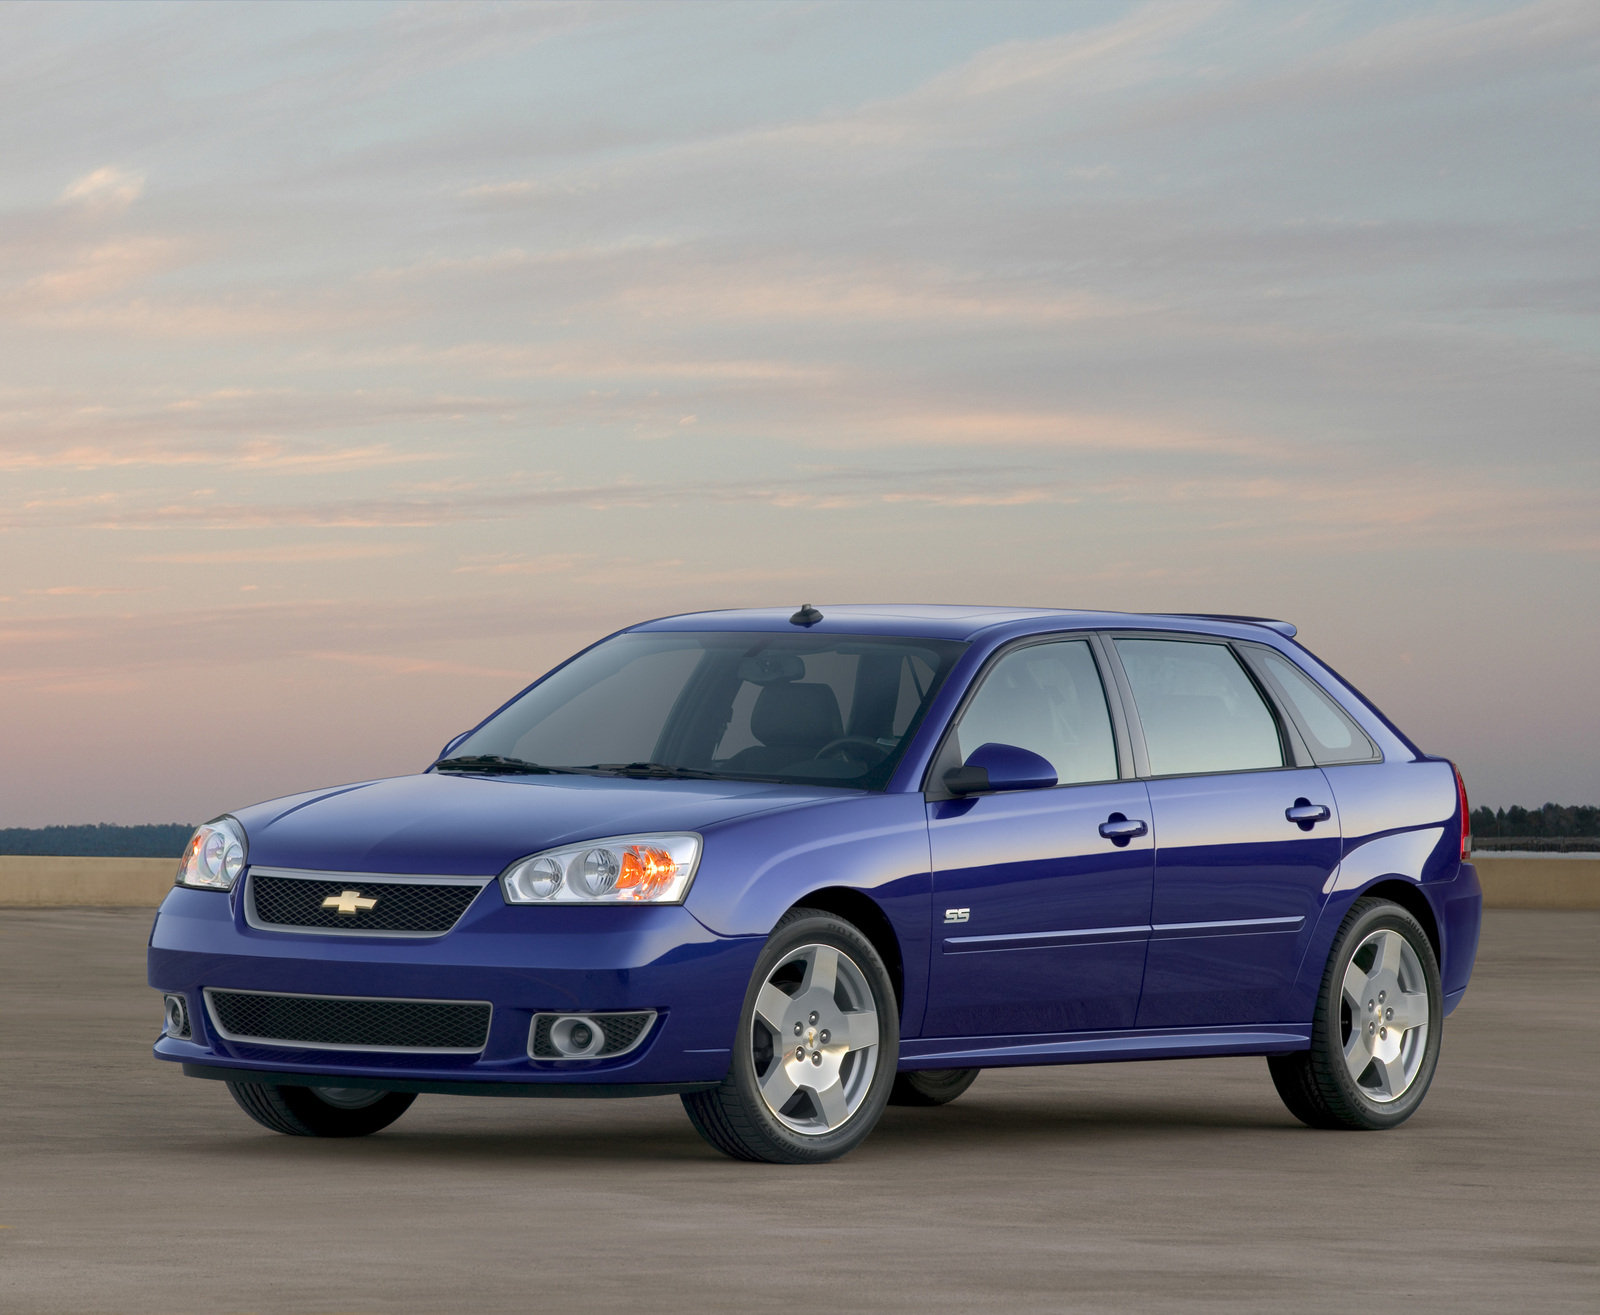 2007 chevrolet malibu maxx ss picture 90317 car review top speed. Black Bedroom Furniture Sets. Home Design Ideas